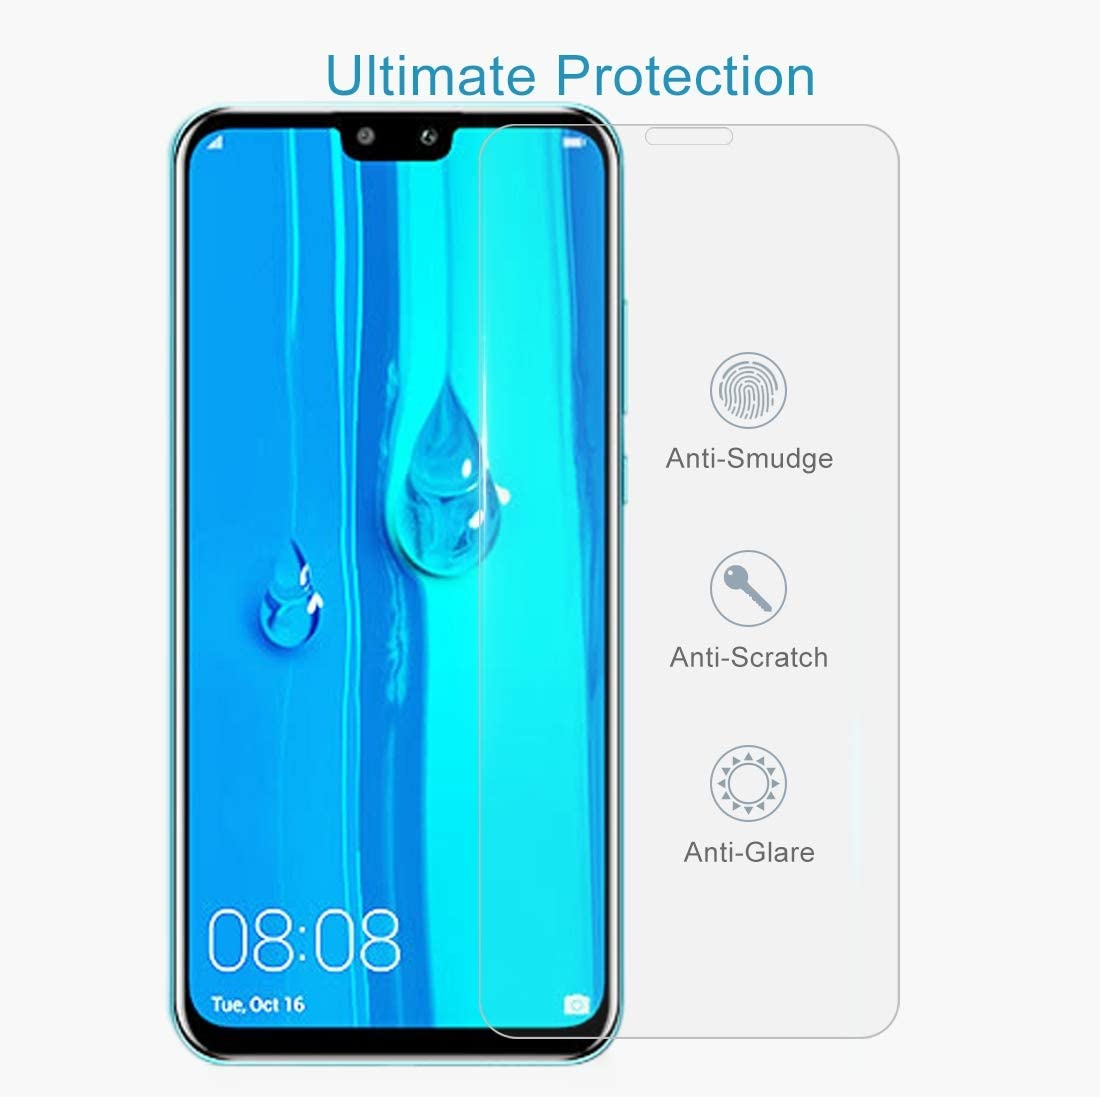 2019 XHC Screen Protector Film 100 PCS 0.26mm 9H 2.5D Explosion-Proof Tempered Glass Film for Huawei Y9 // Enjoy 9 Plus Tempered Glass Film